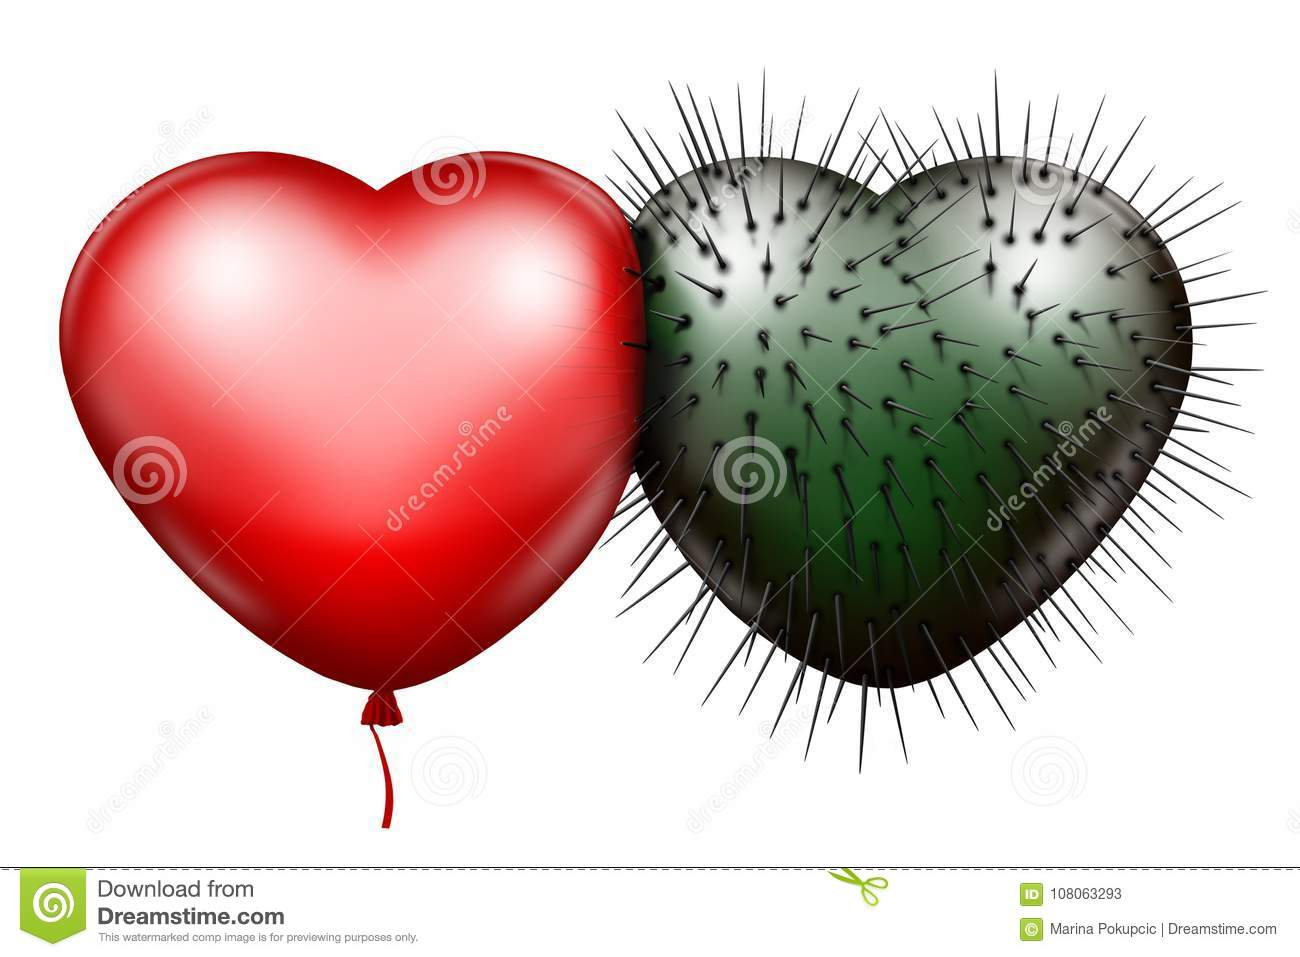 Red Glossy Heart And Green Spiked Heart Stock Illustration